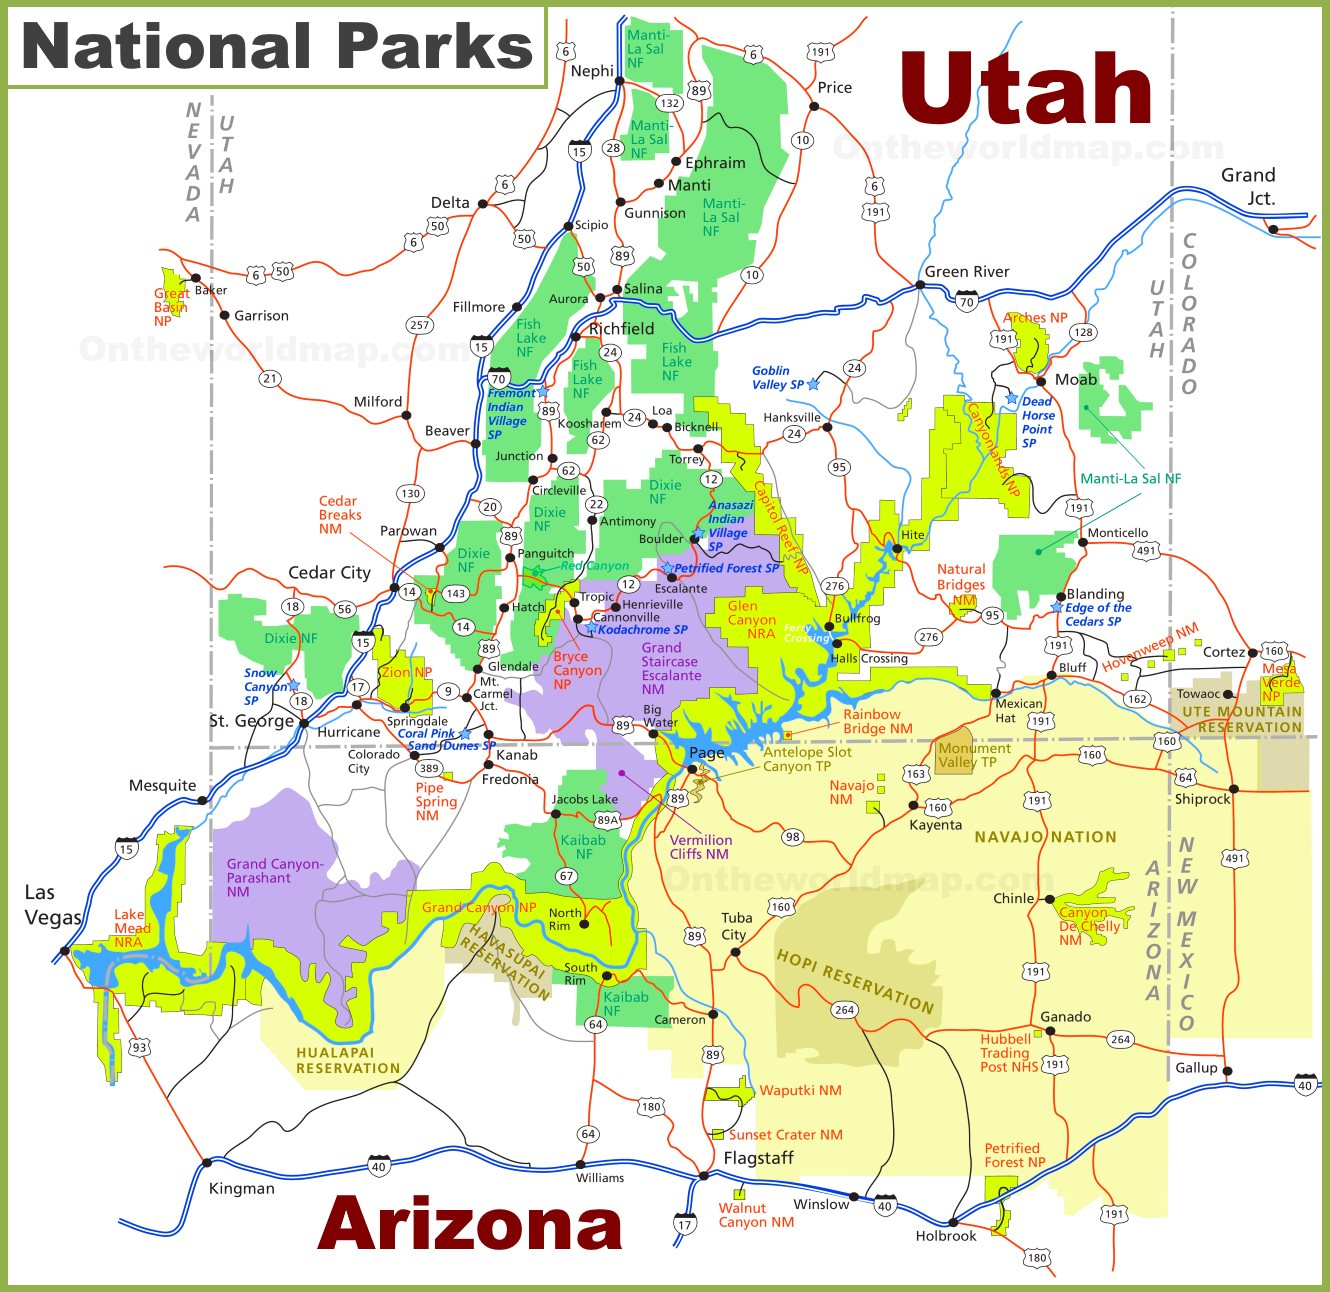 Map Of Arizona Utah Border.Utah Arizona National Parks Map